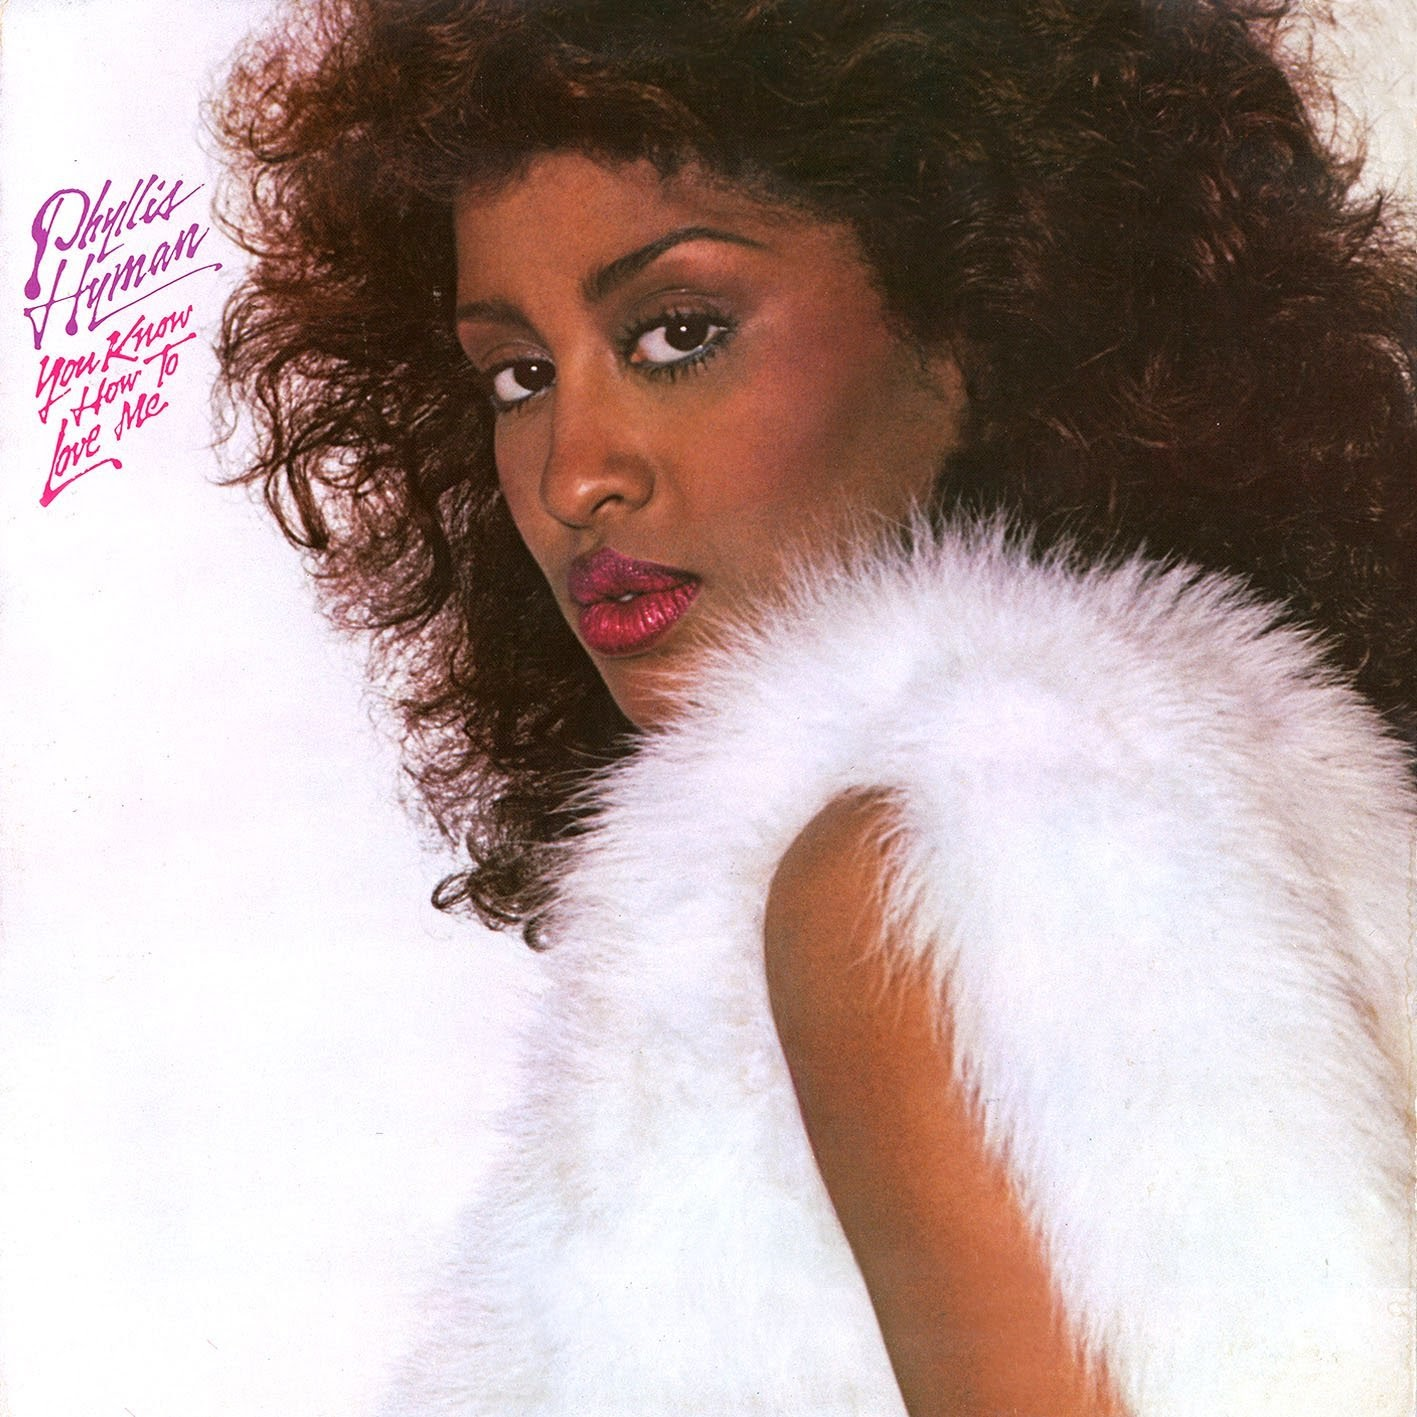 Phyllis Hyman - Under Your Spell